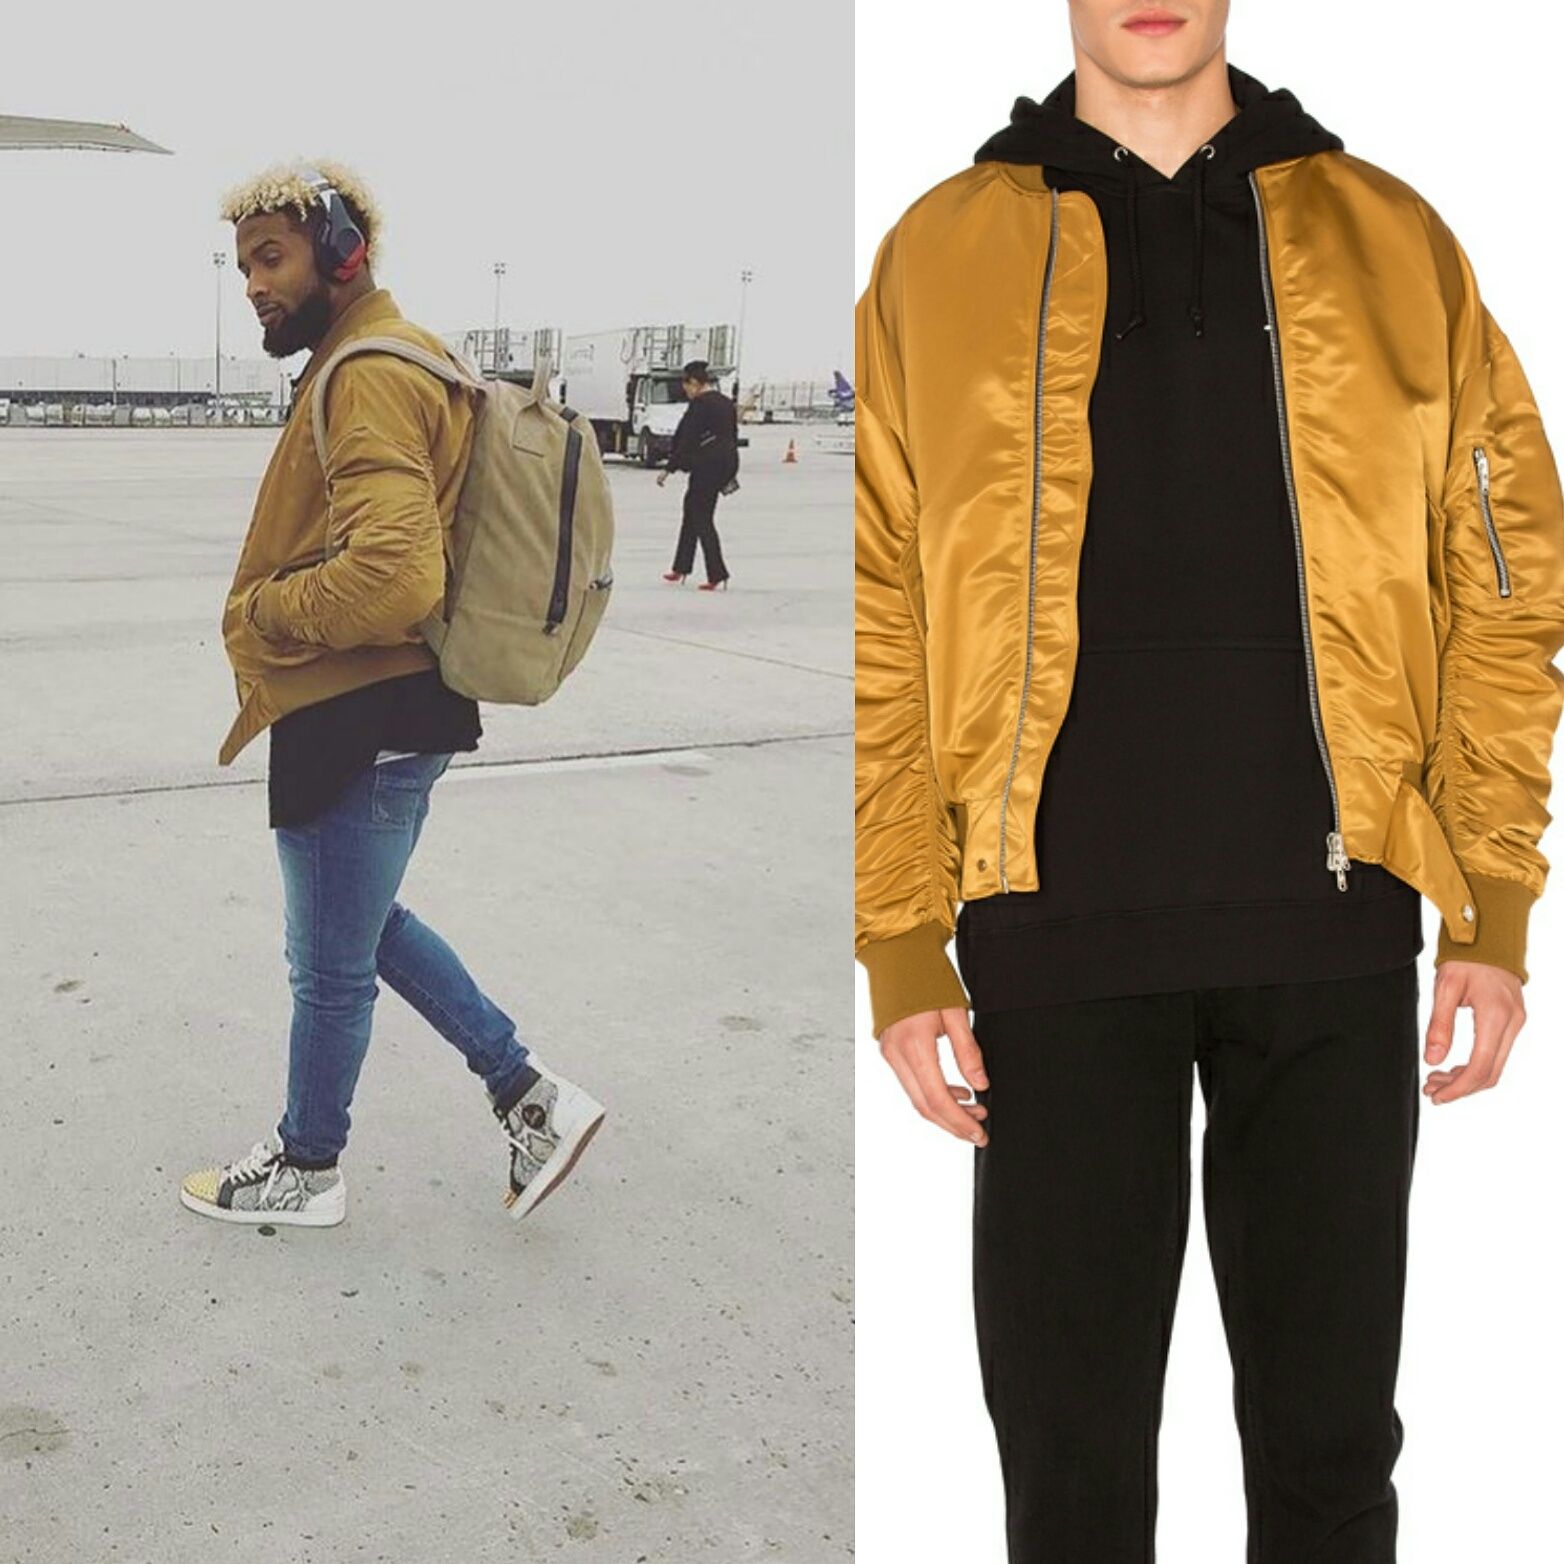 STYLE: Odell Beckham Jr Vs. Vikings Fear Of God Nylon Bomber Jacket And Christian Louboutin Sneakers